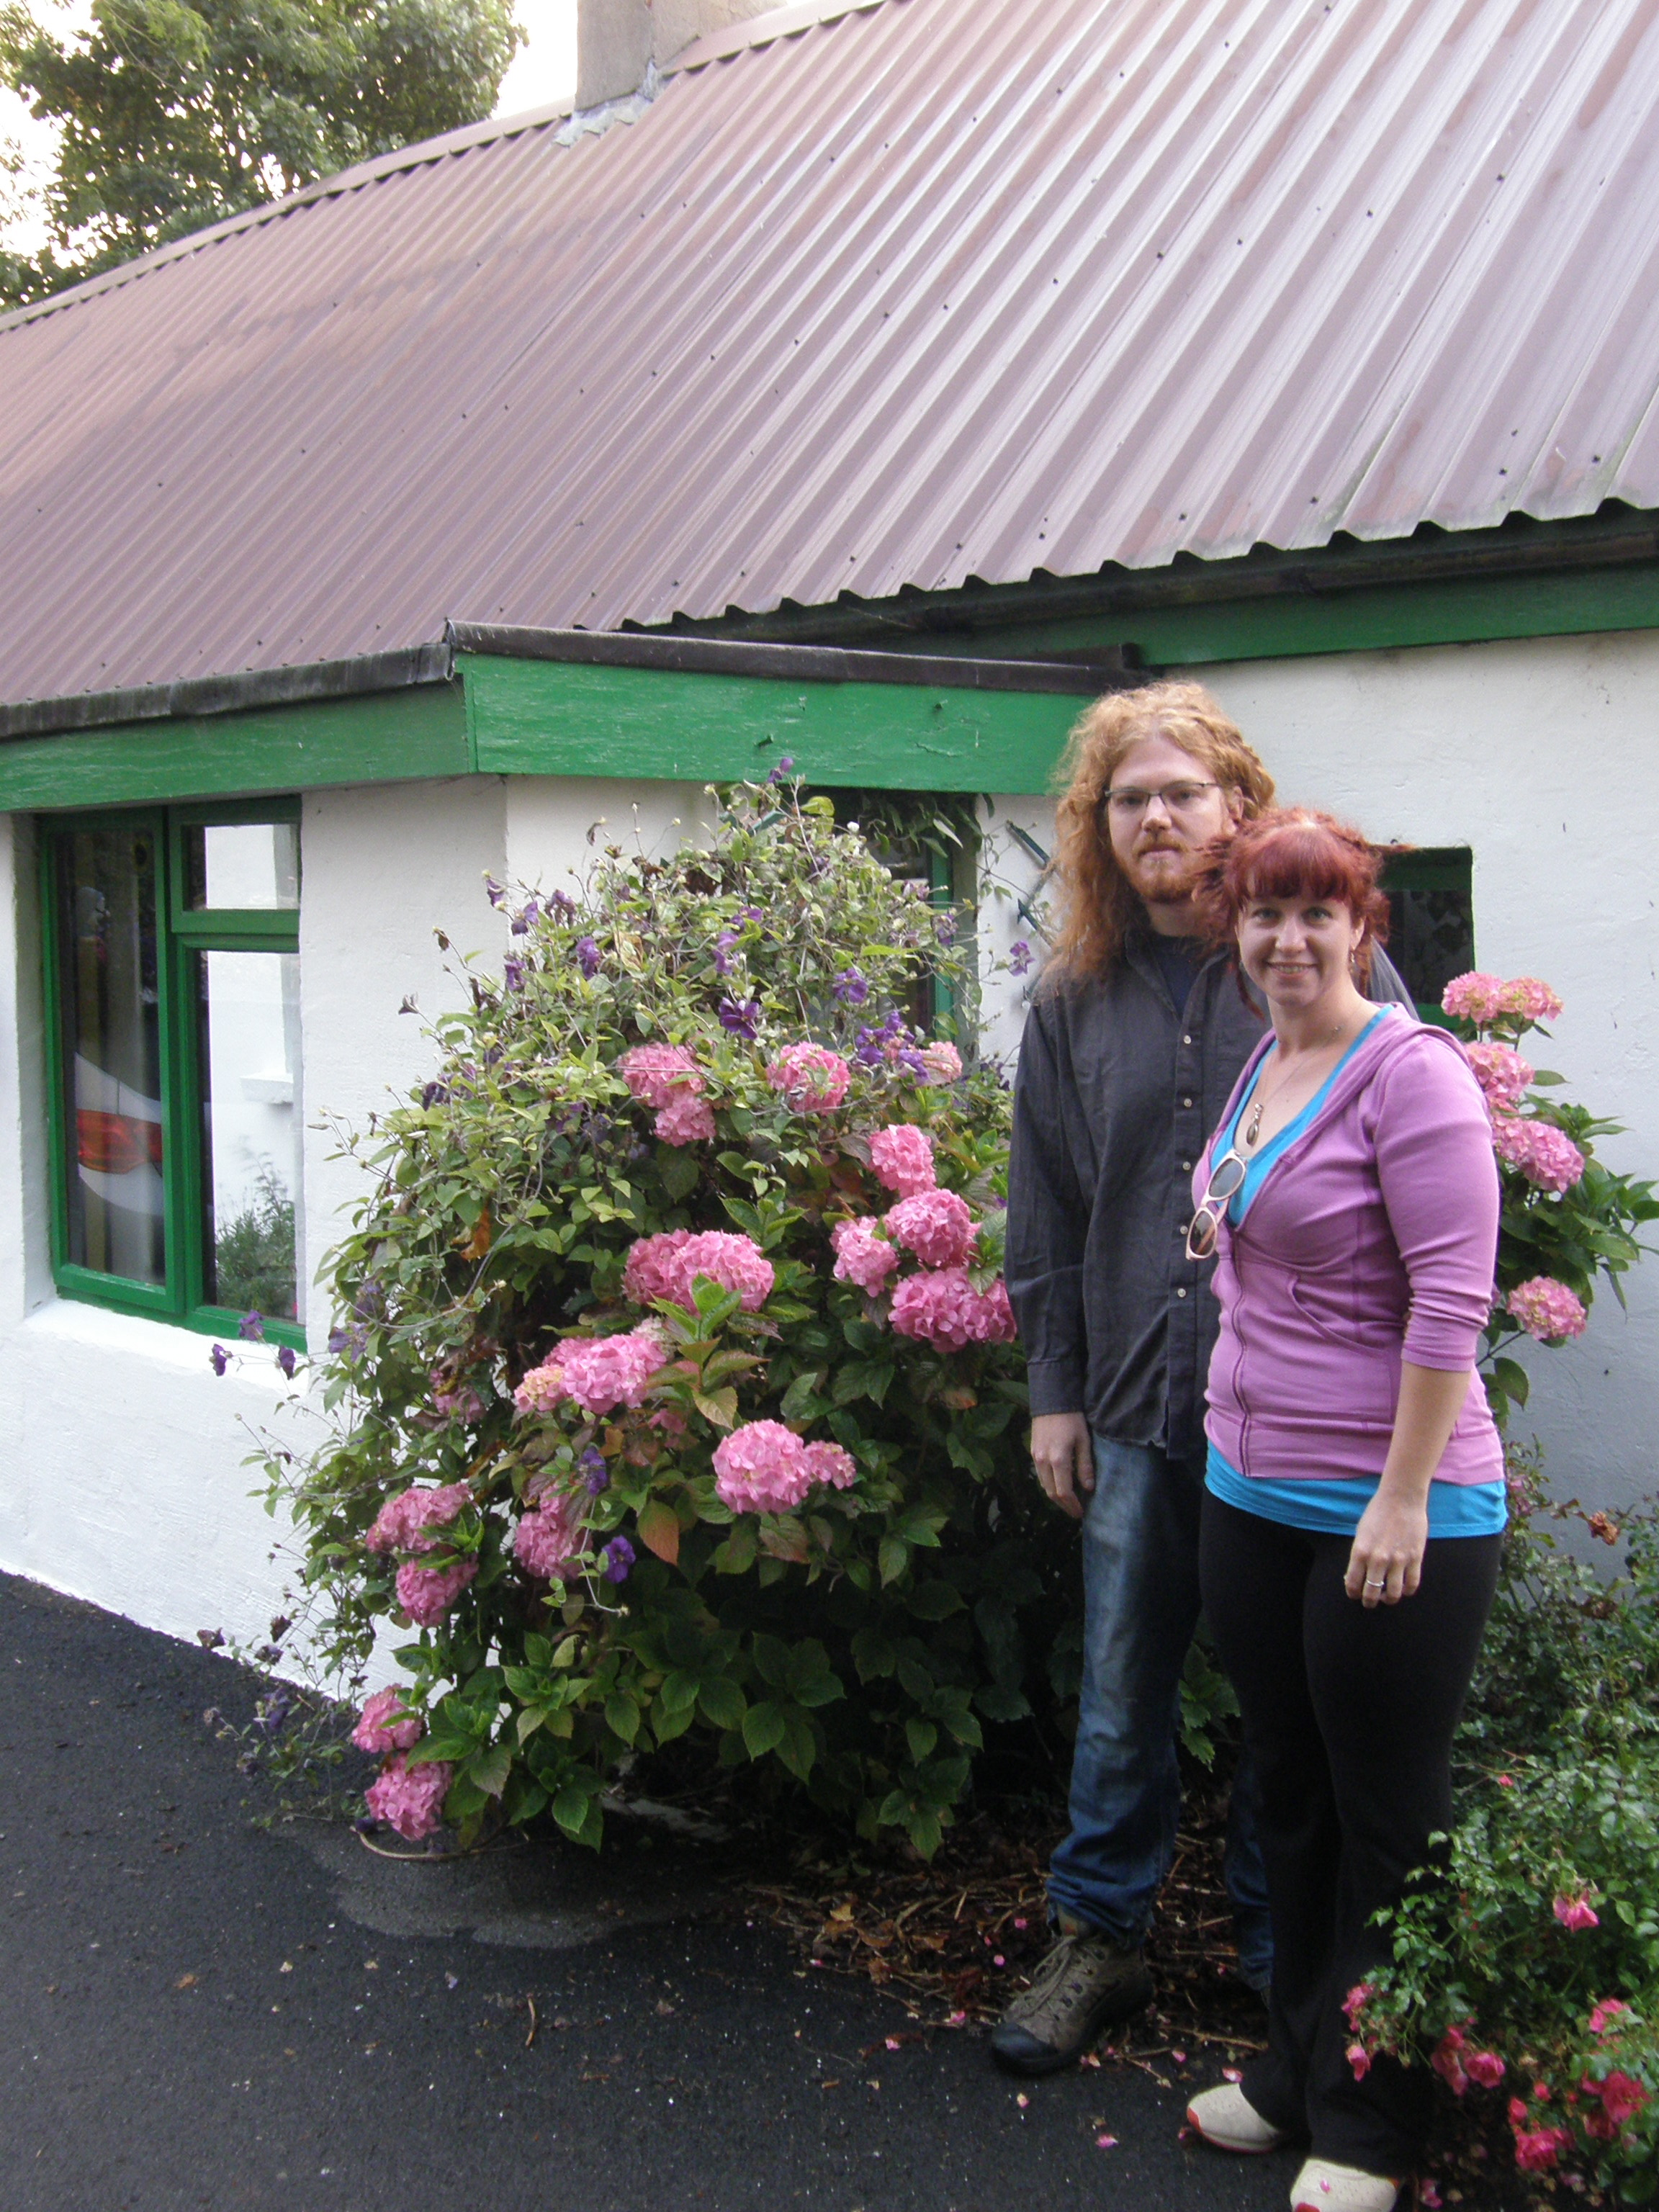 Jeff & Caitlin at the McDonalds' Chestnut Cottage in Banagher, Co. Offaly, Éire